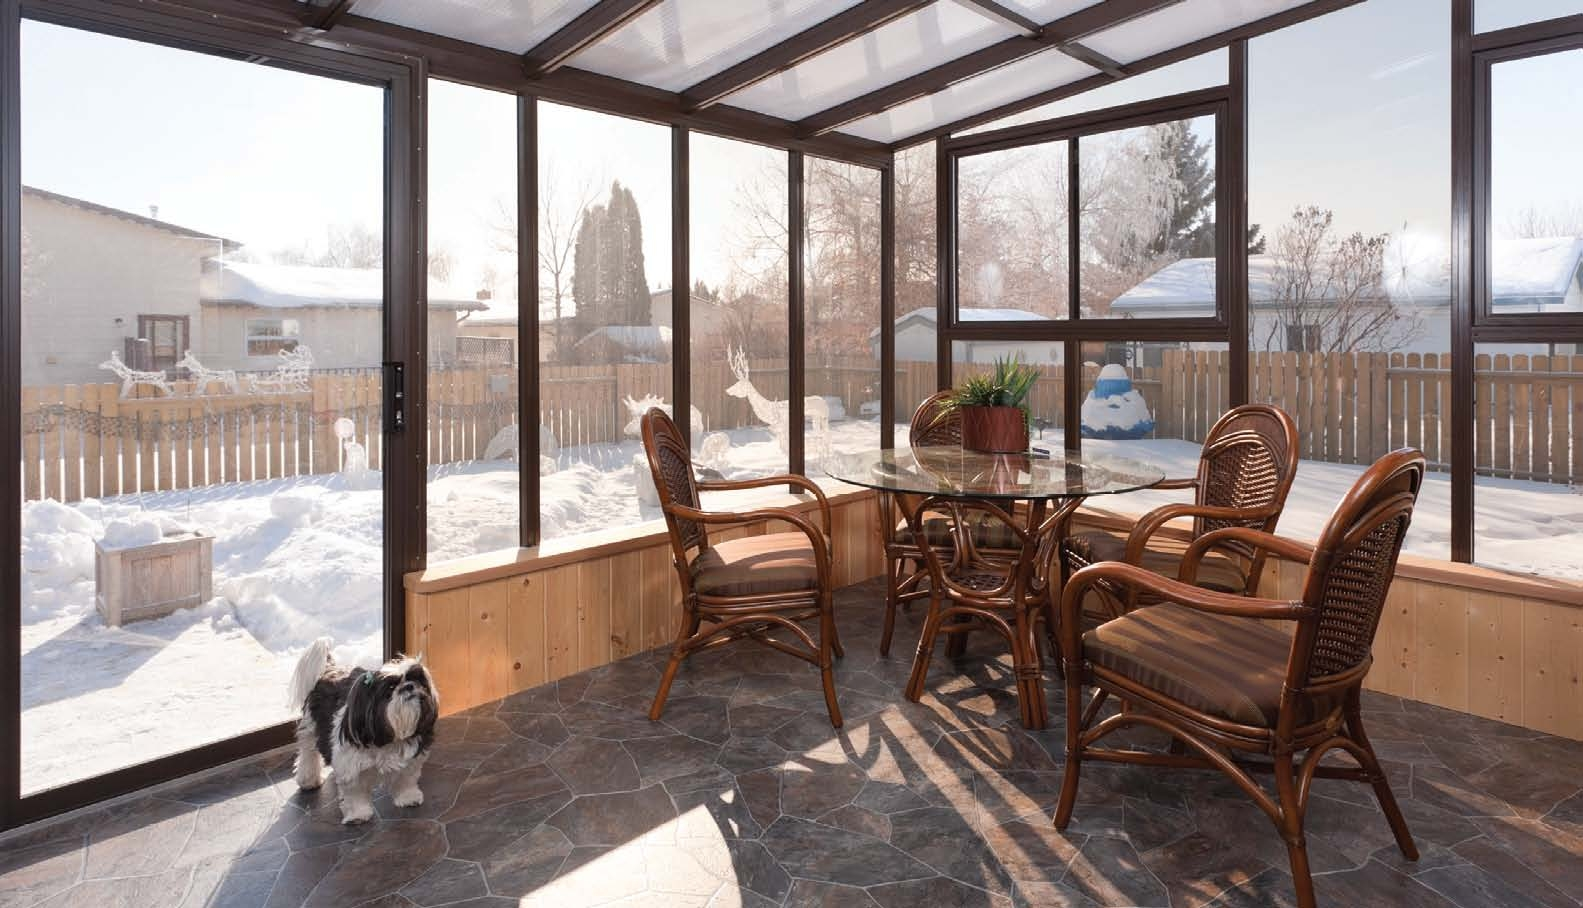 Decorated interior view of a sunroom including table, chairs, and dog